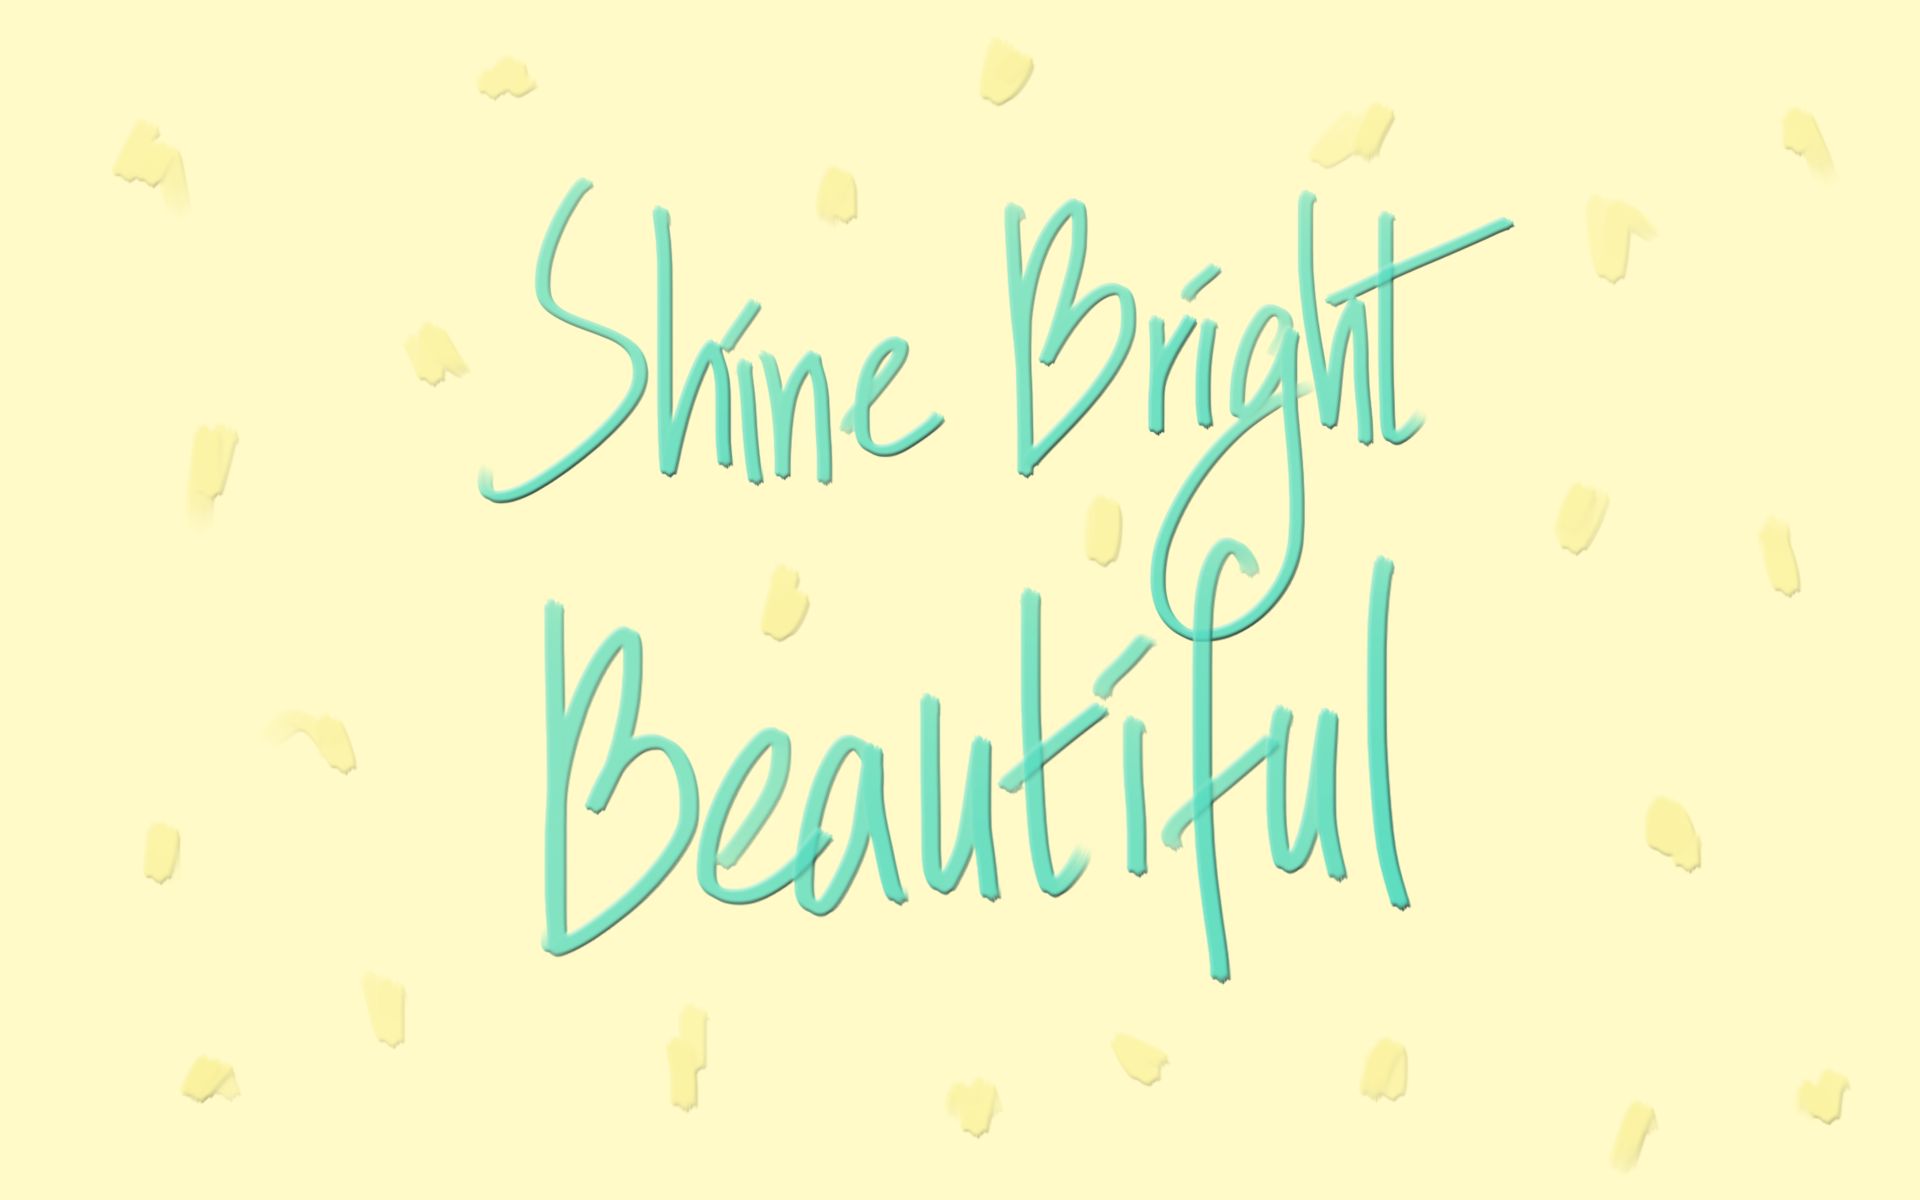 free desktop wallpaper-shine bright beautiful - inkstruck studio